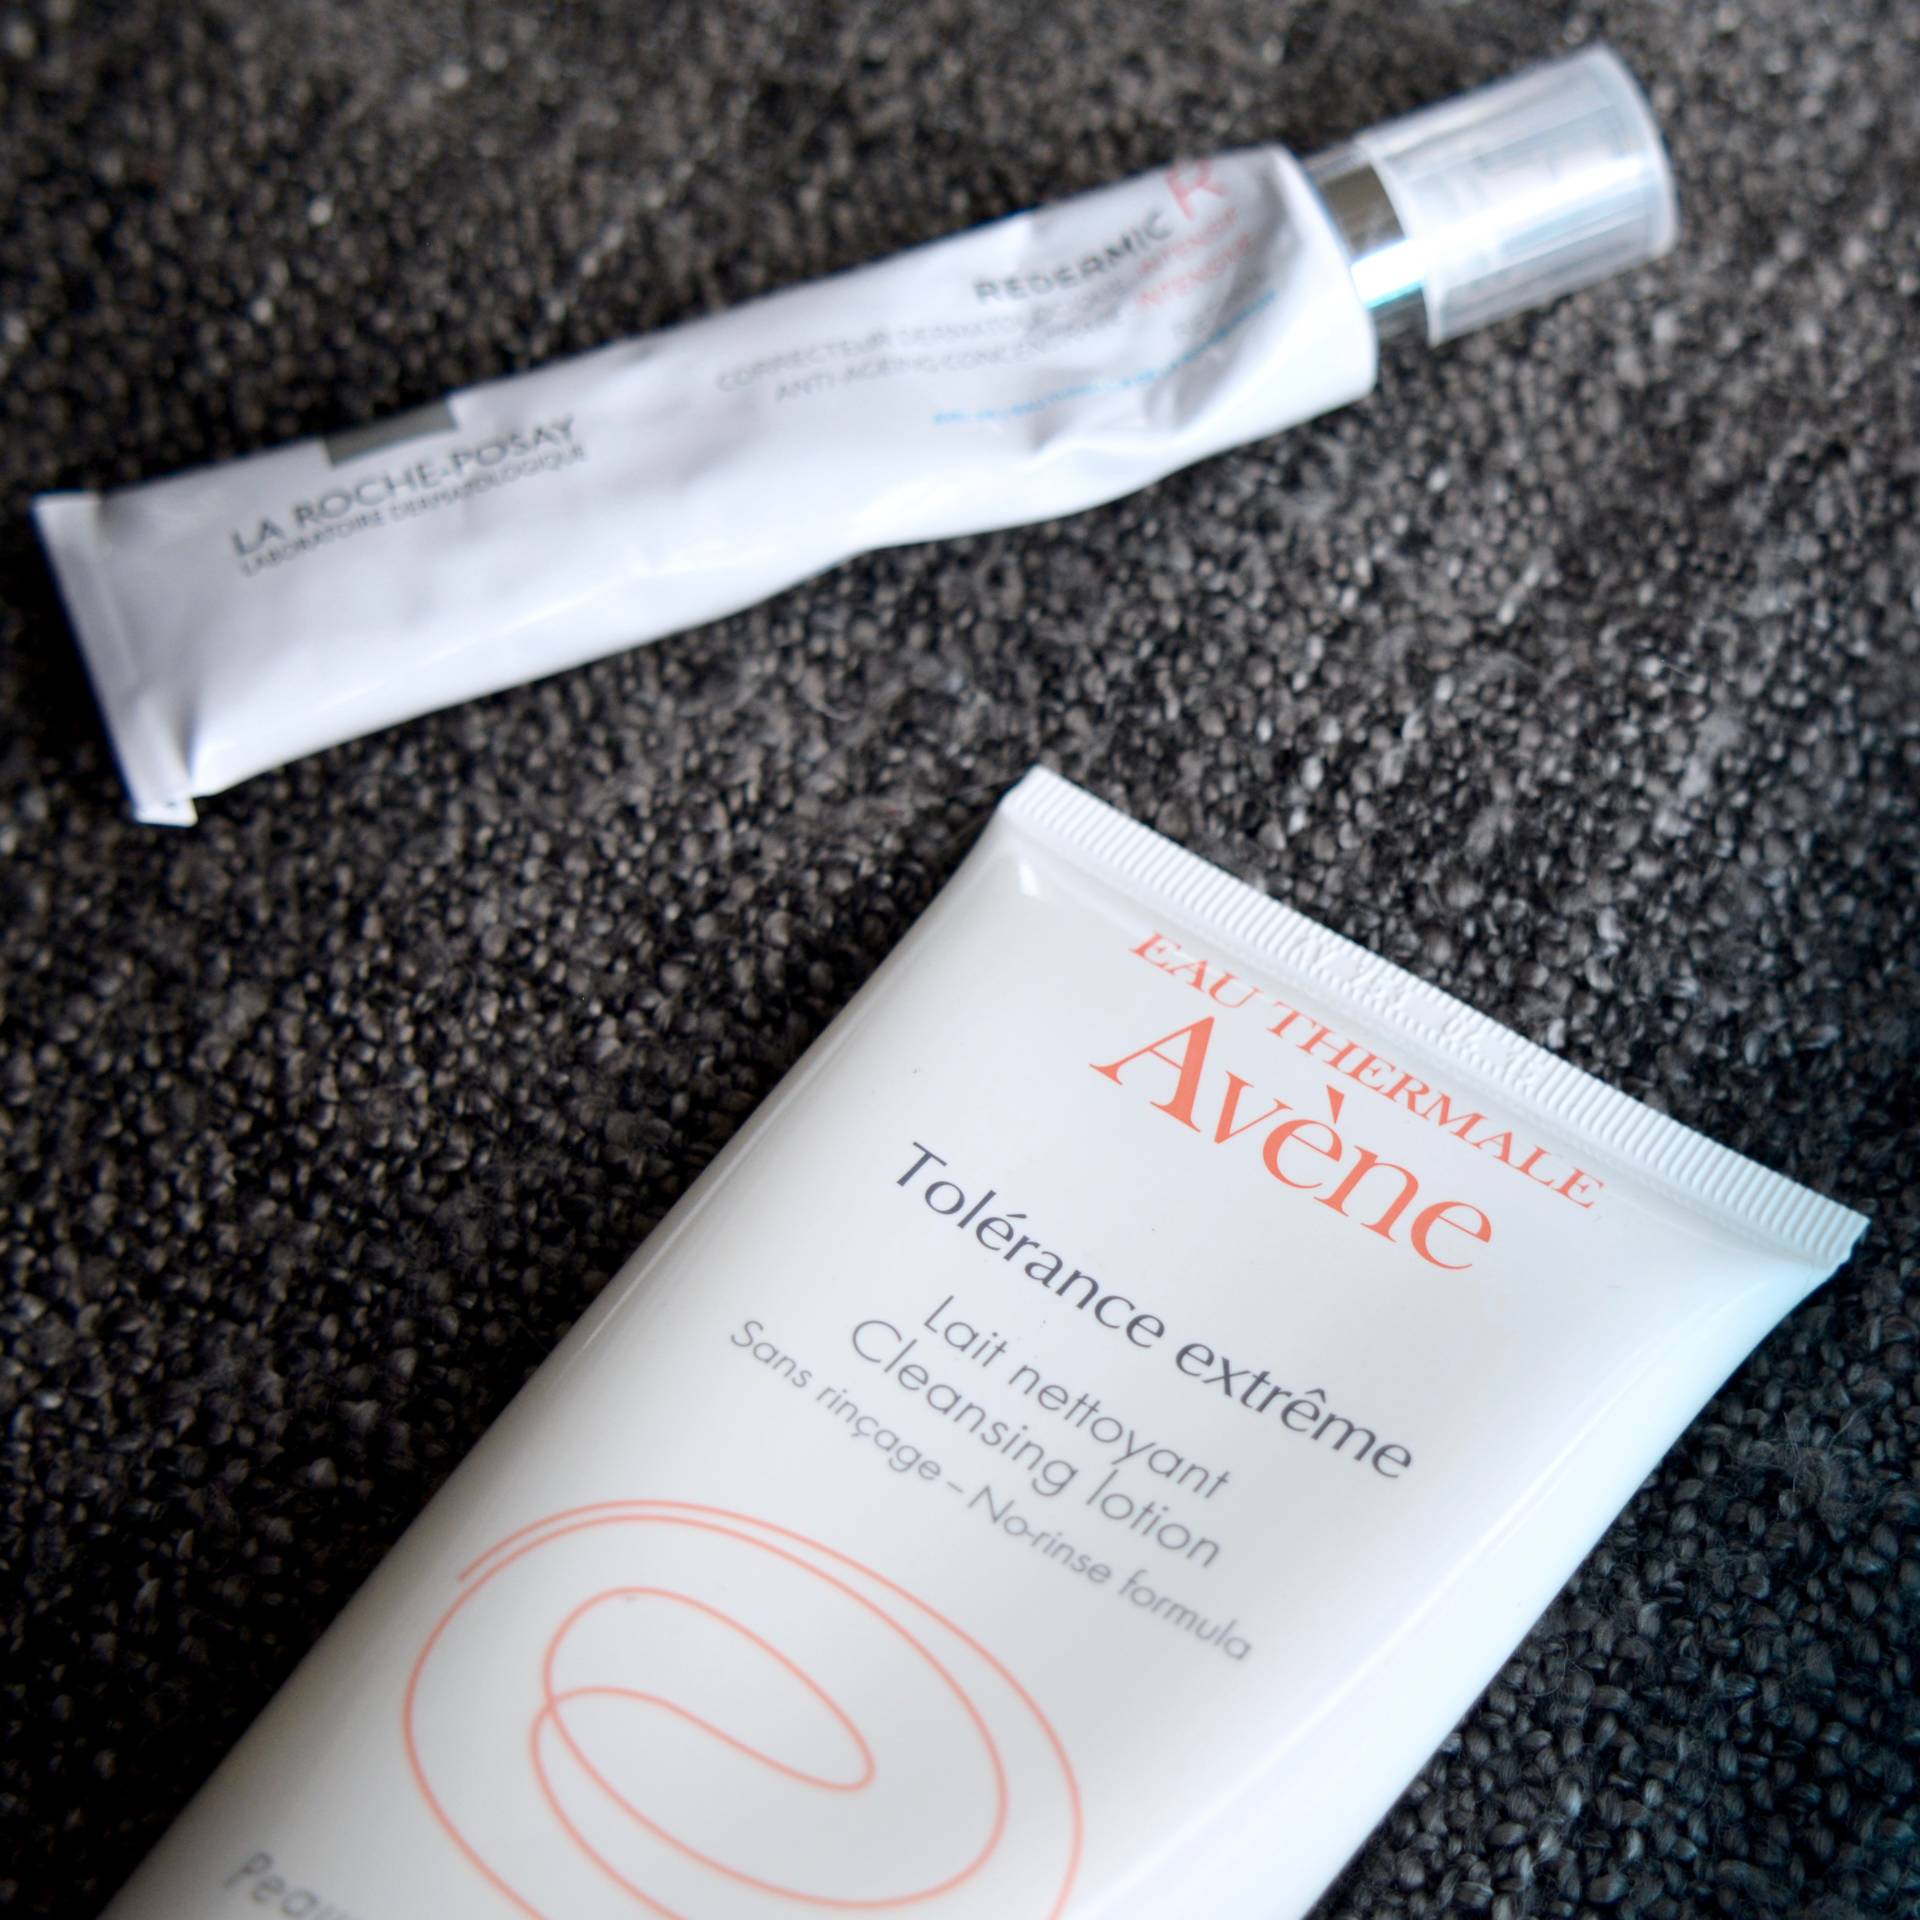 Skincare Shake Up, October 2016: All of the skincare I've been using recently that helps my sensitive skin and rosacea. Avène Tolérance Extrême Cleansing Lotion.